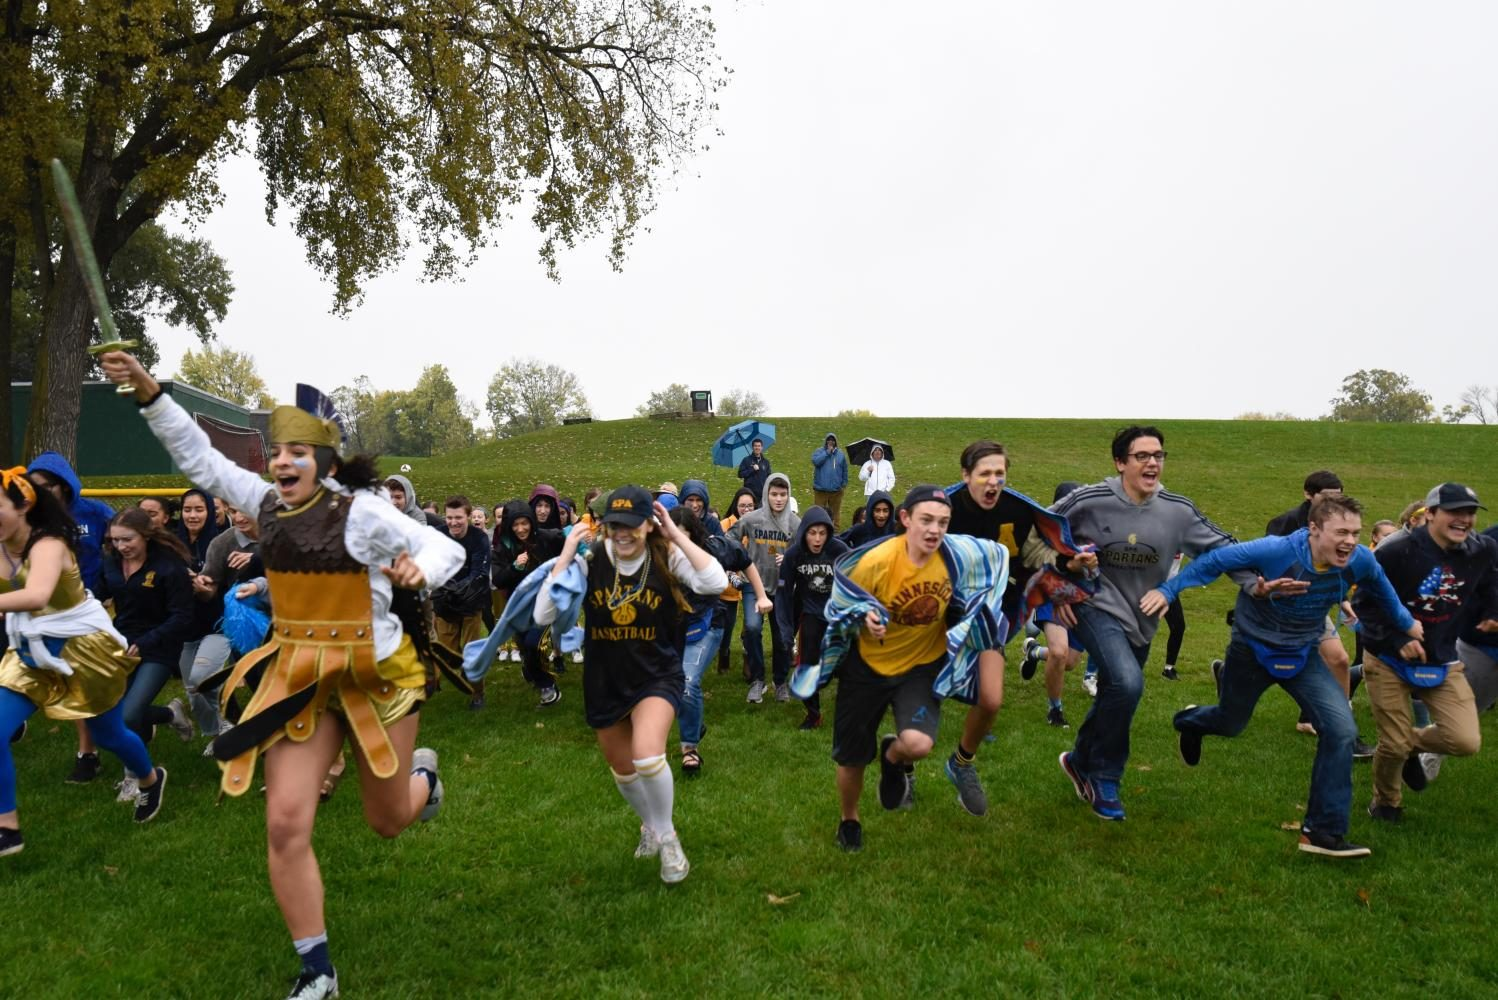 Senior and Spartan Izzy Denny leads students in the annual storming of the field. In spite of the rain, students turned out for the tradition.